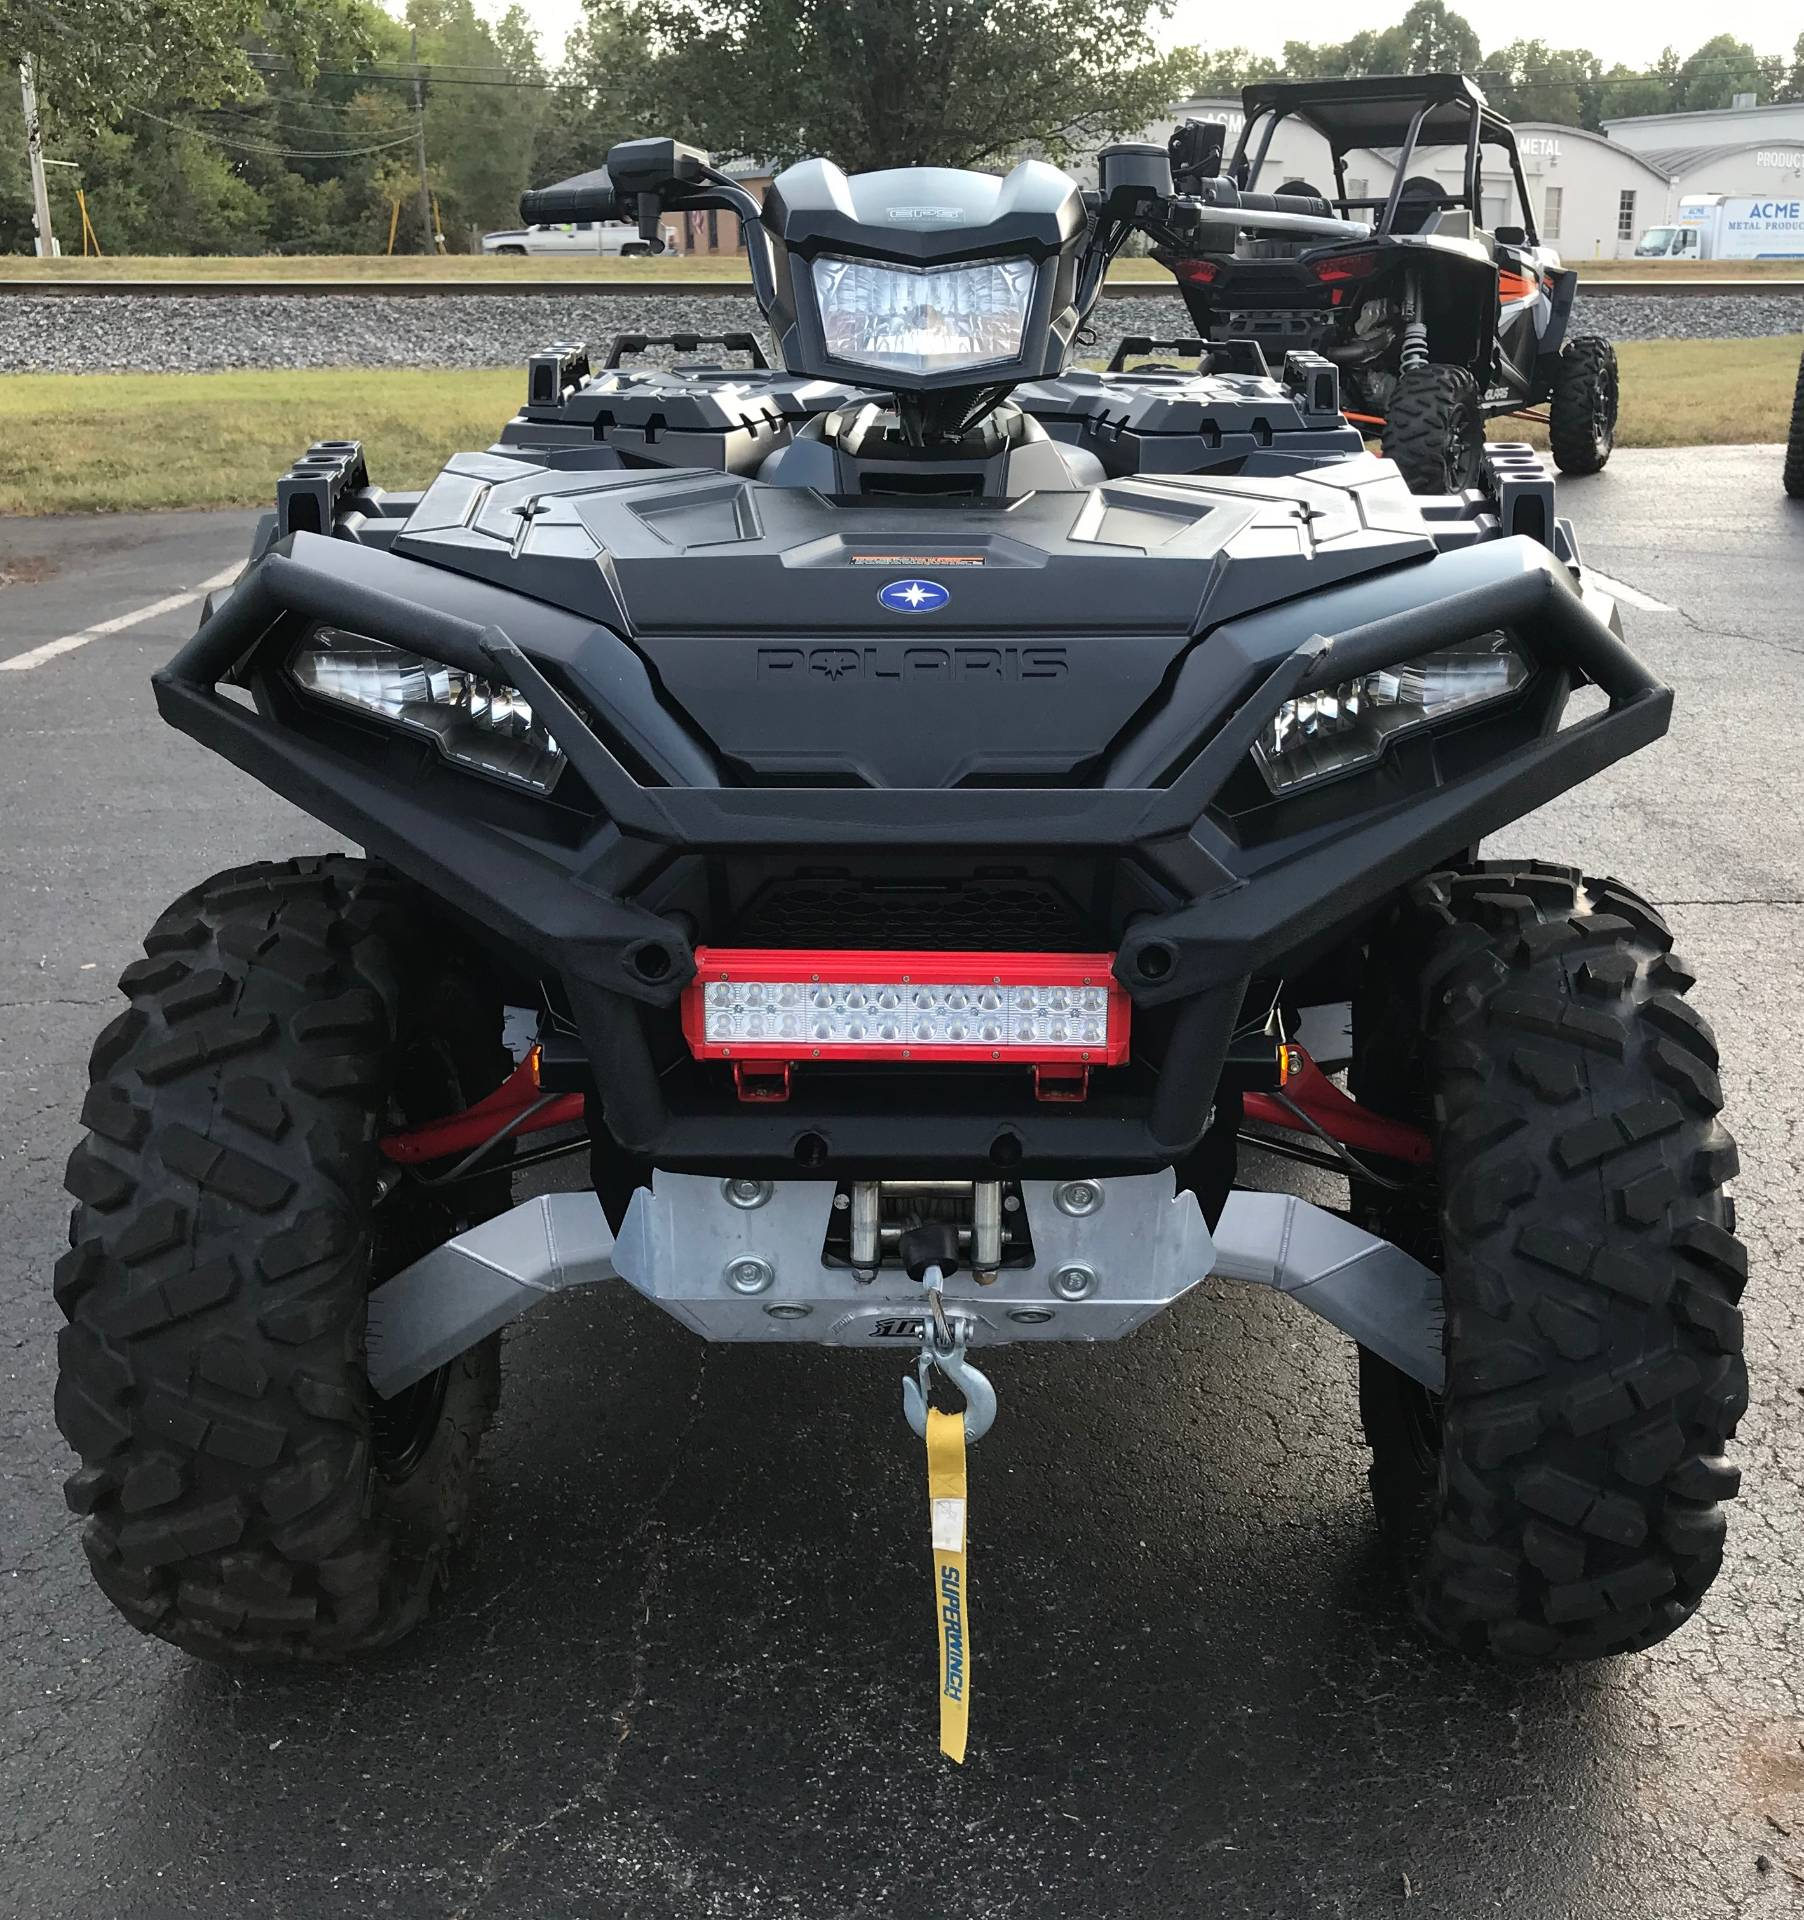 2017 Polaris Sportsman XP 1000 in Statesville, North Carolina - Photo 8